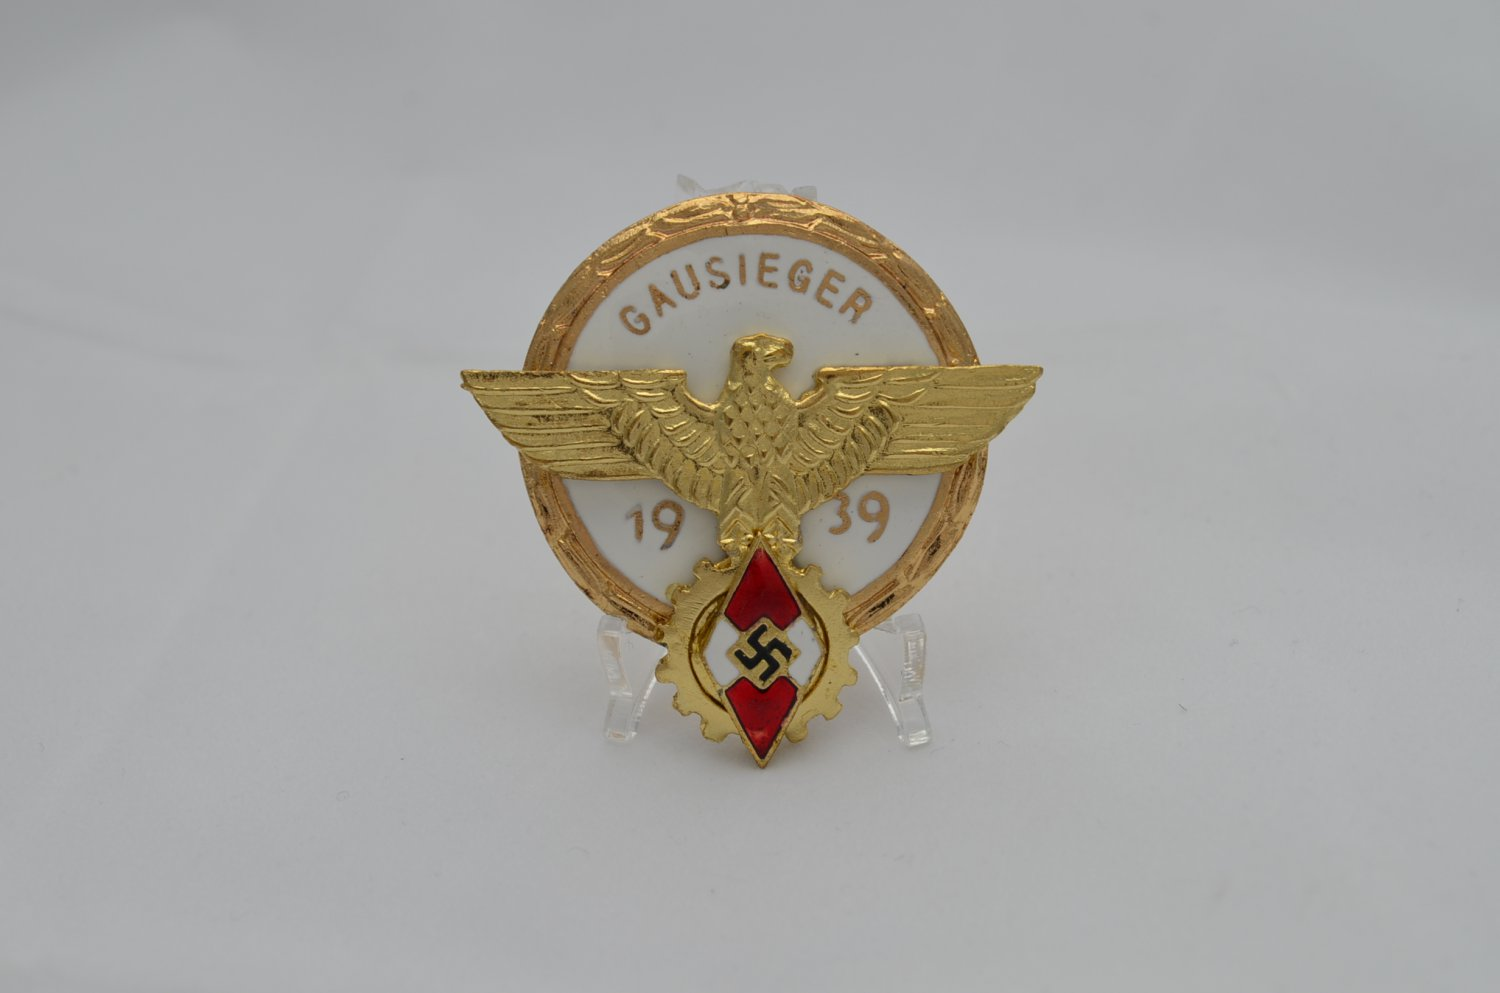 WWII THE GERMAN GOLD BADGE GAUSIEGER 1939